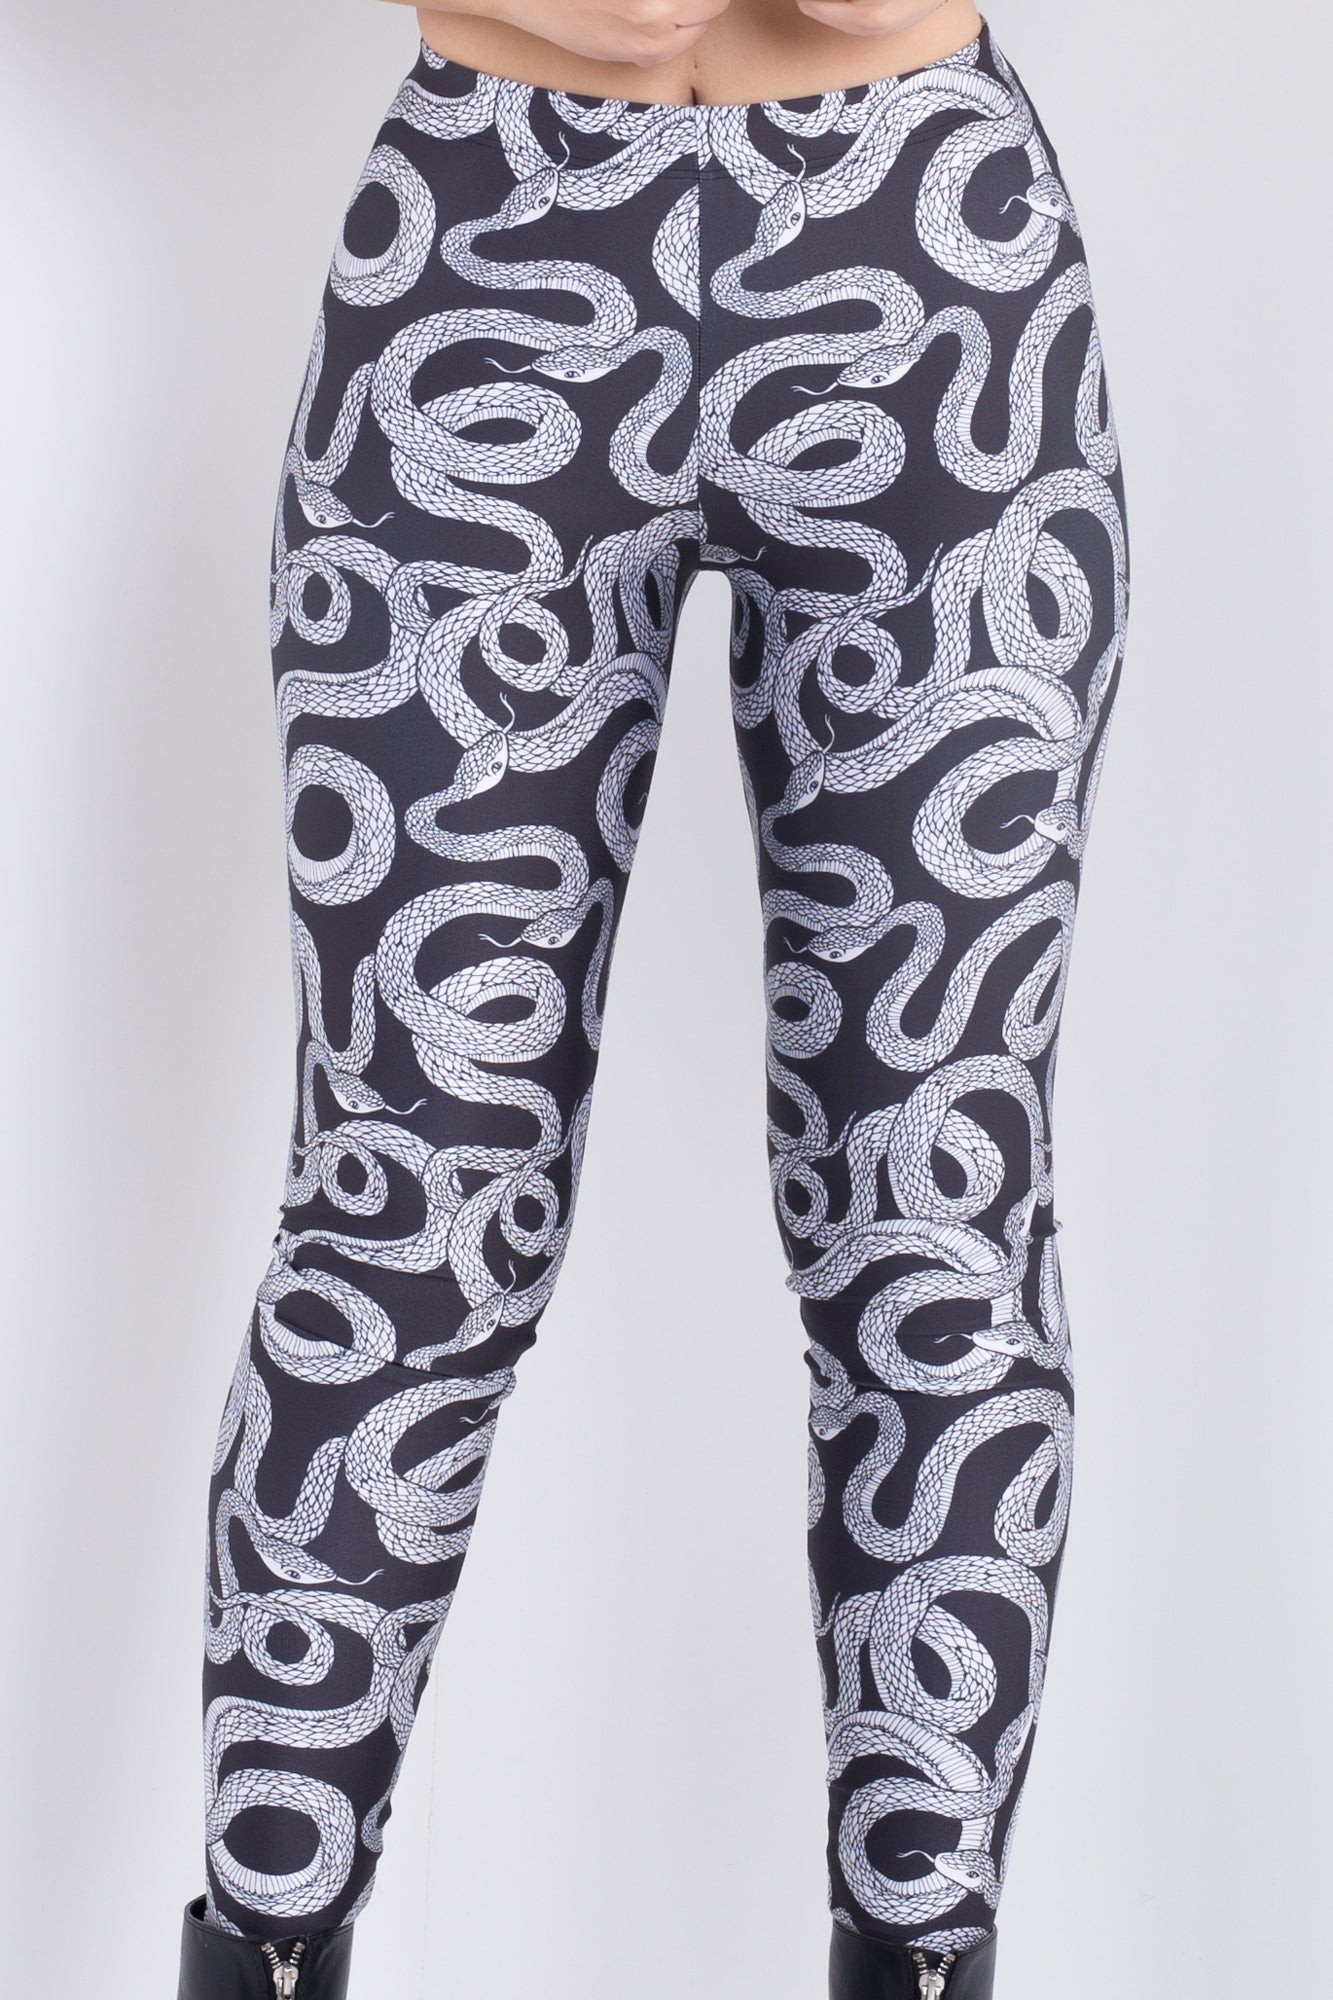 Medusa Monochrome Leggings